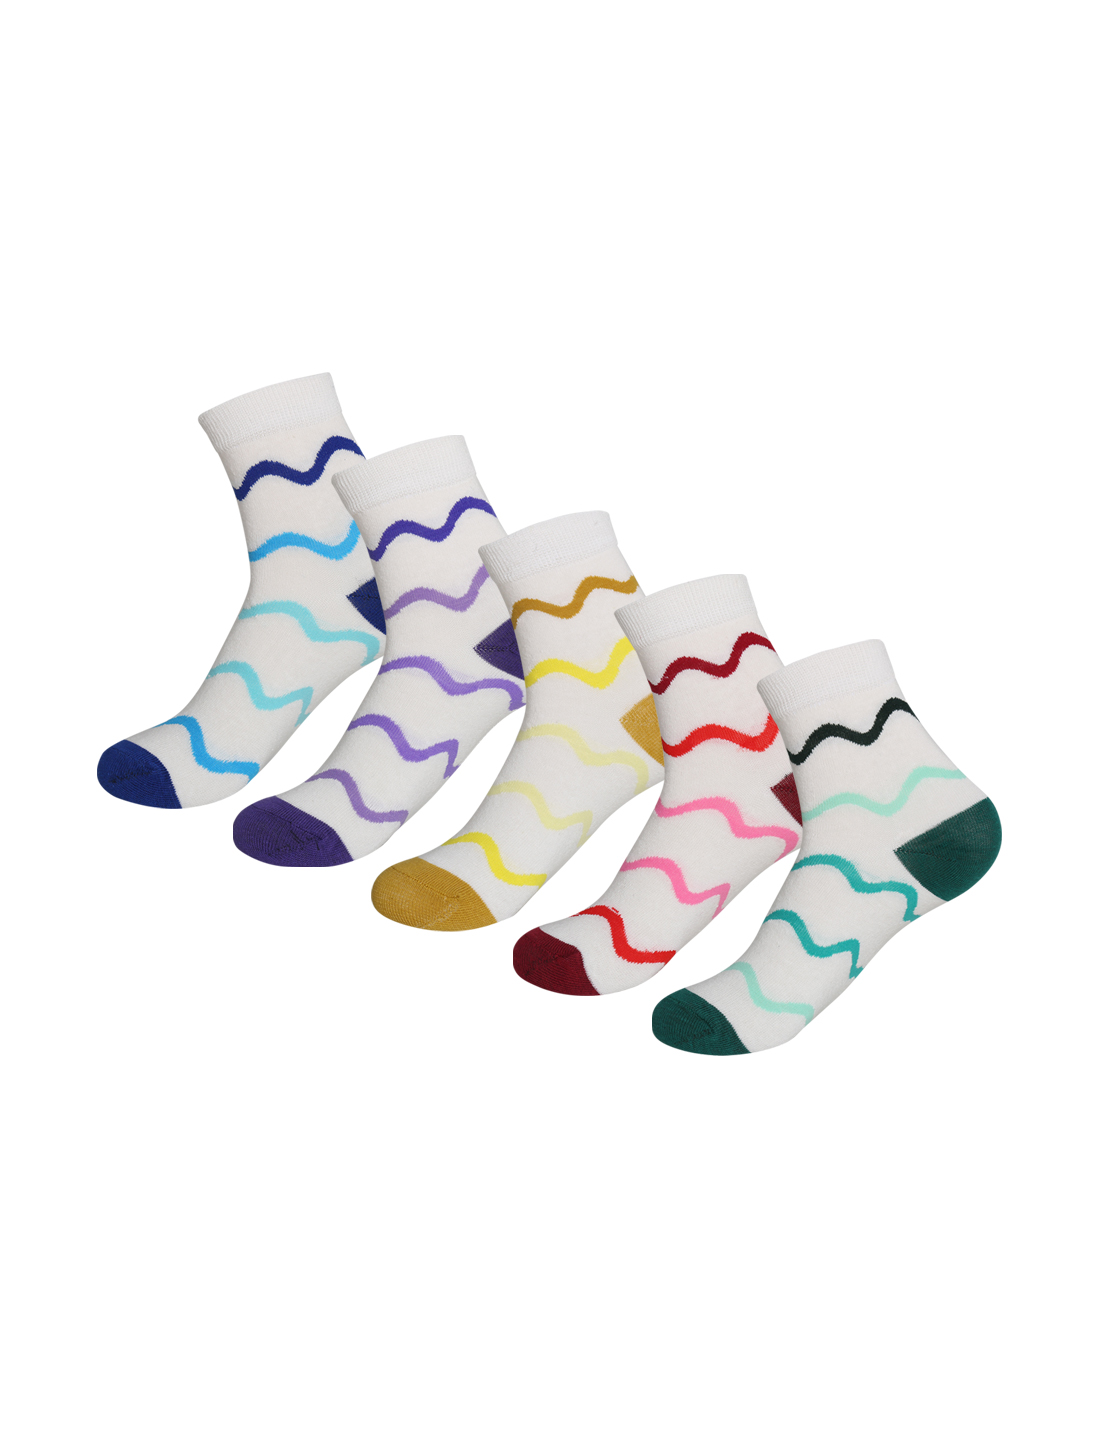 Women 5 Pack Cotton Blend Colorful Waves Crew Socks White 9-11